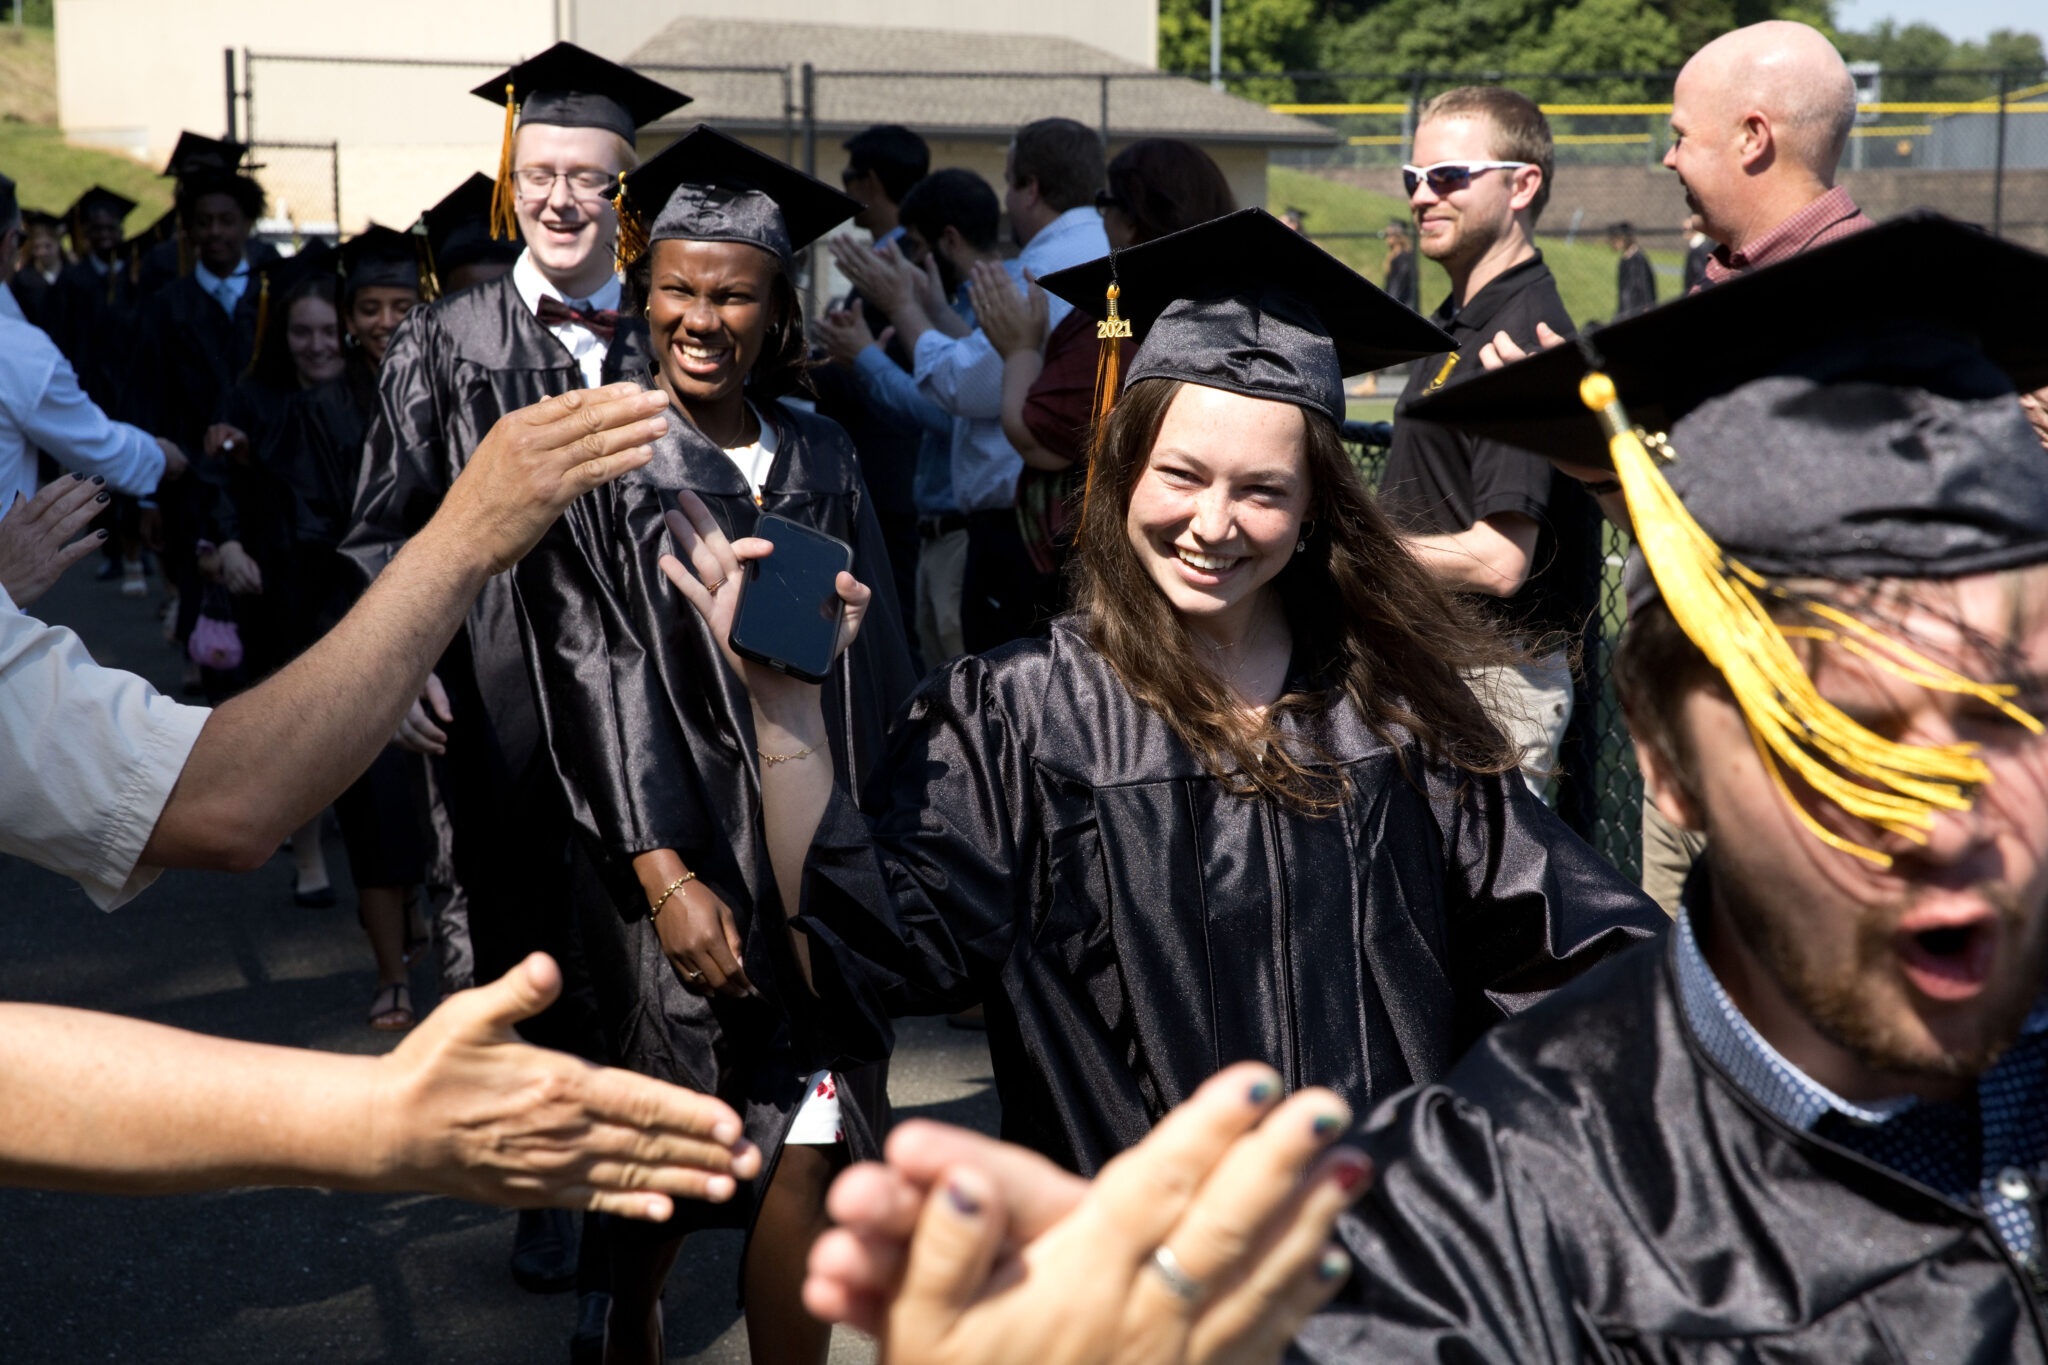 family and friends celebrate graduation